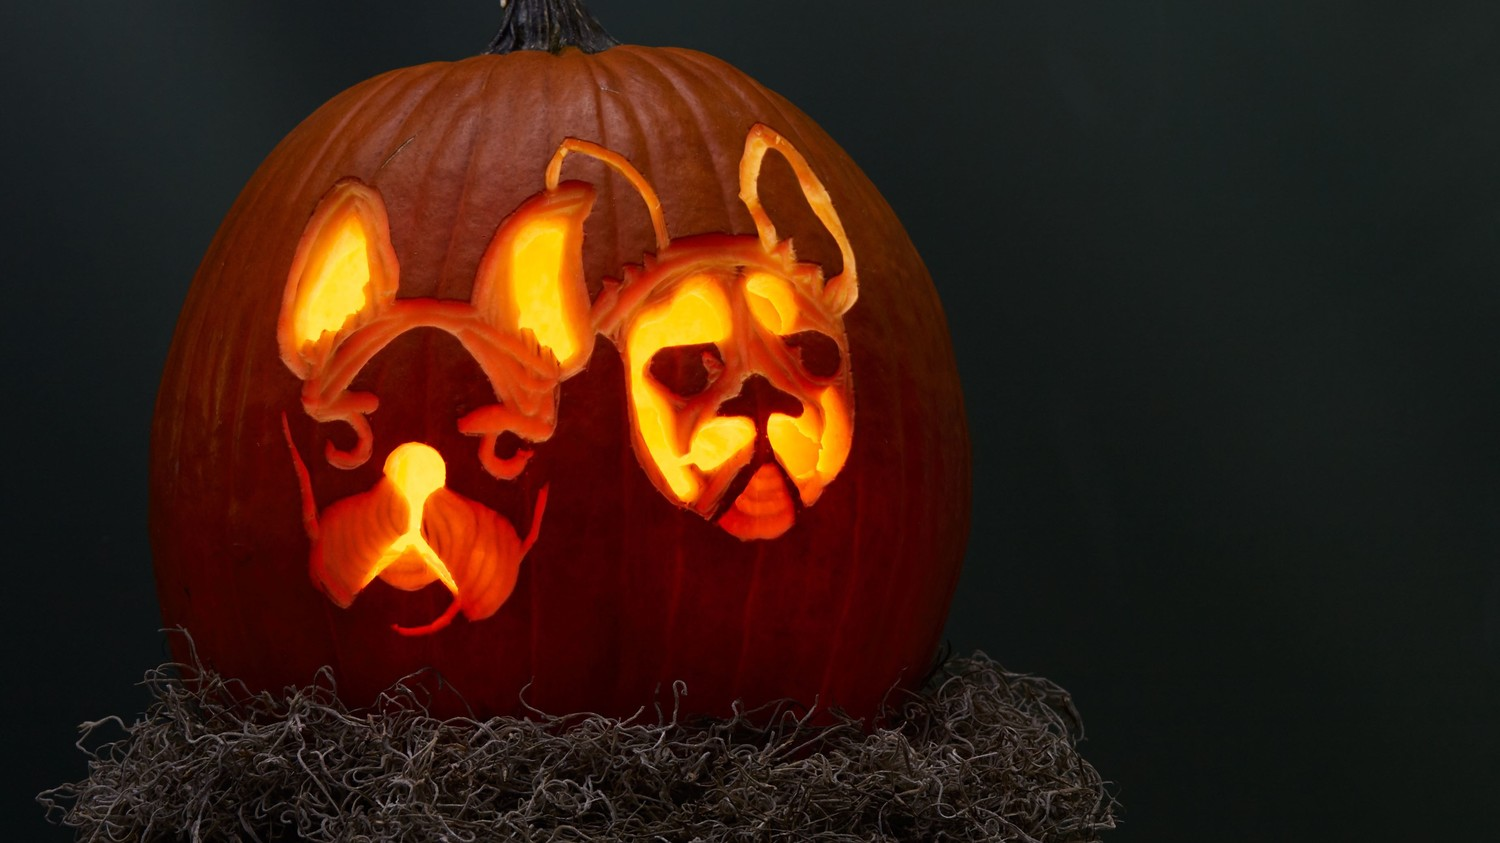 Dog-o'-Lantern Pumpkin